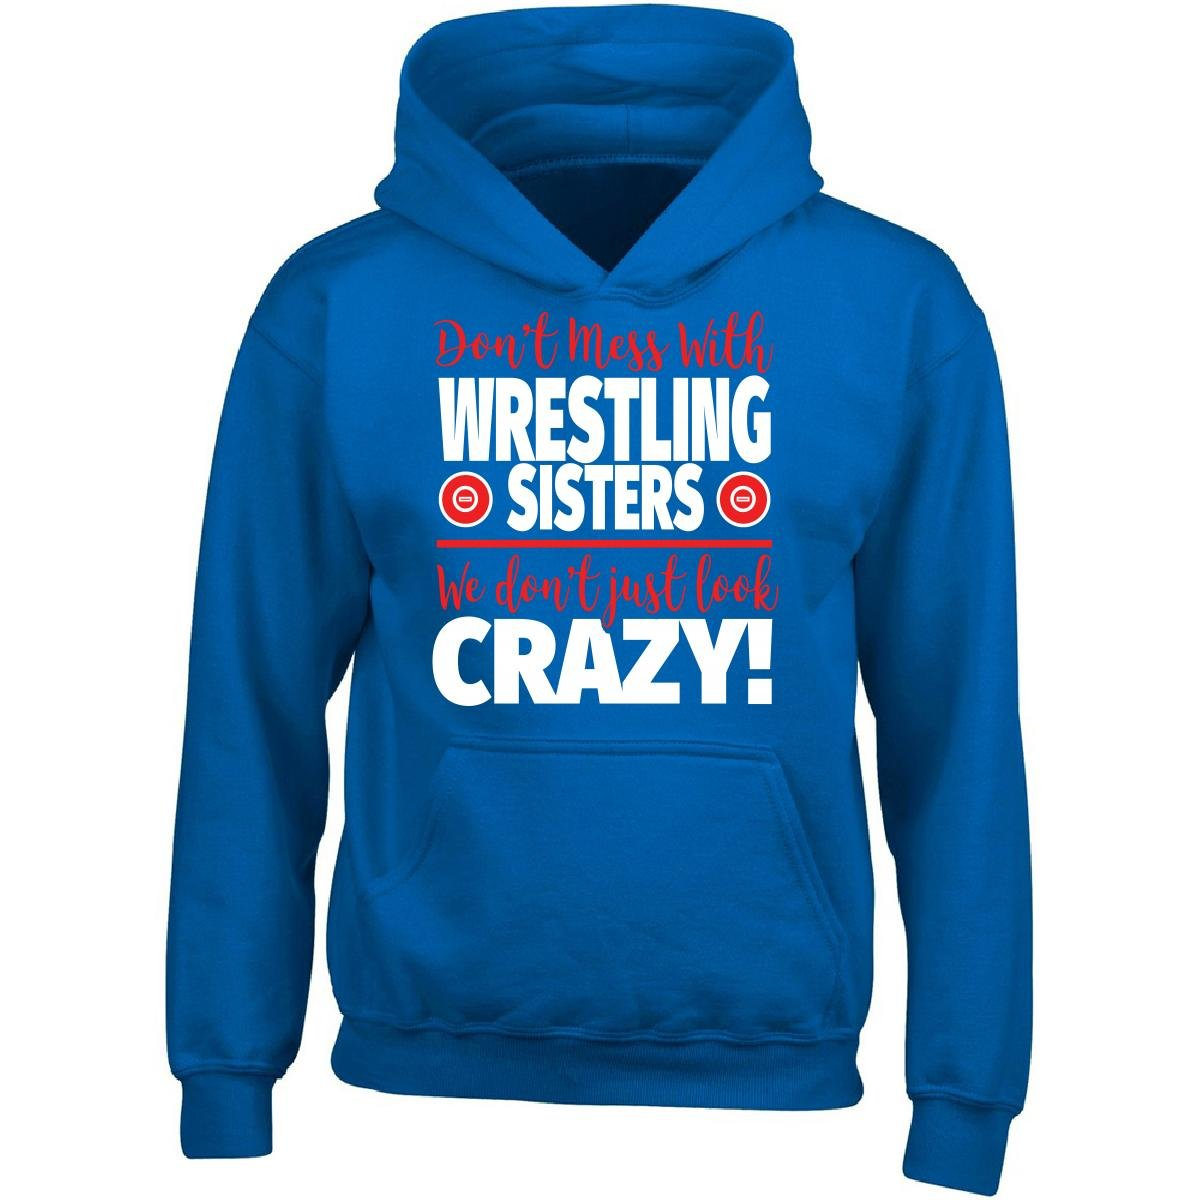 Eternally Gifted Crazy Wrestling Family - Don't Mess With Wrestling Sisters - Adult Hoodie by Eternally Gifted